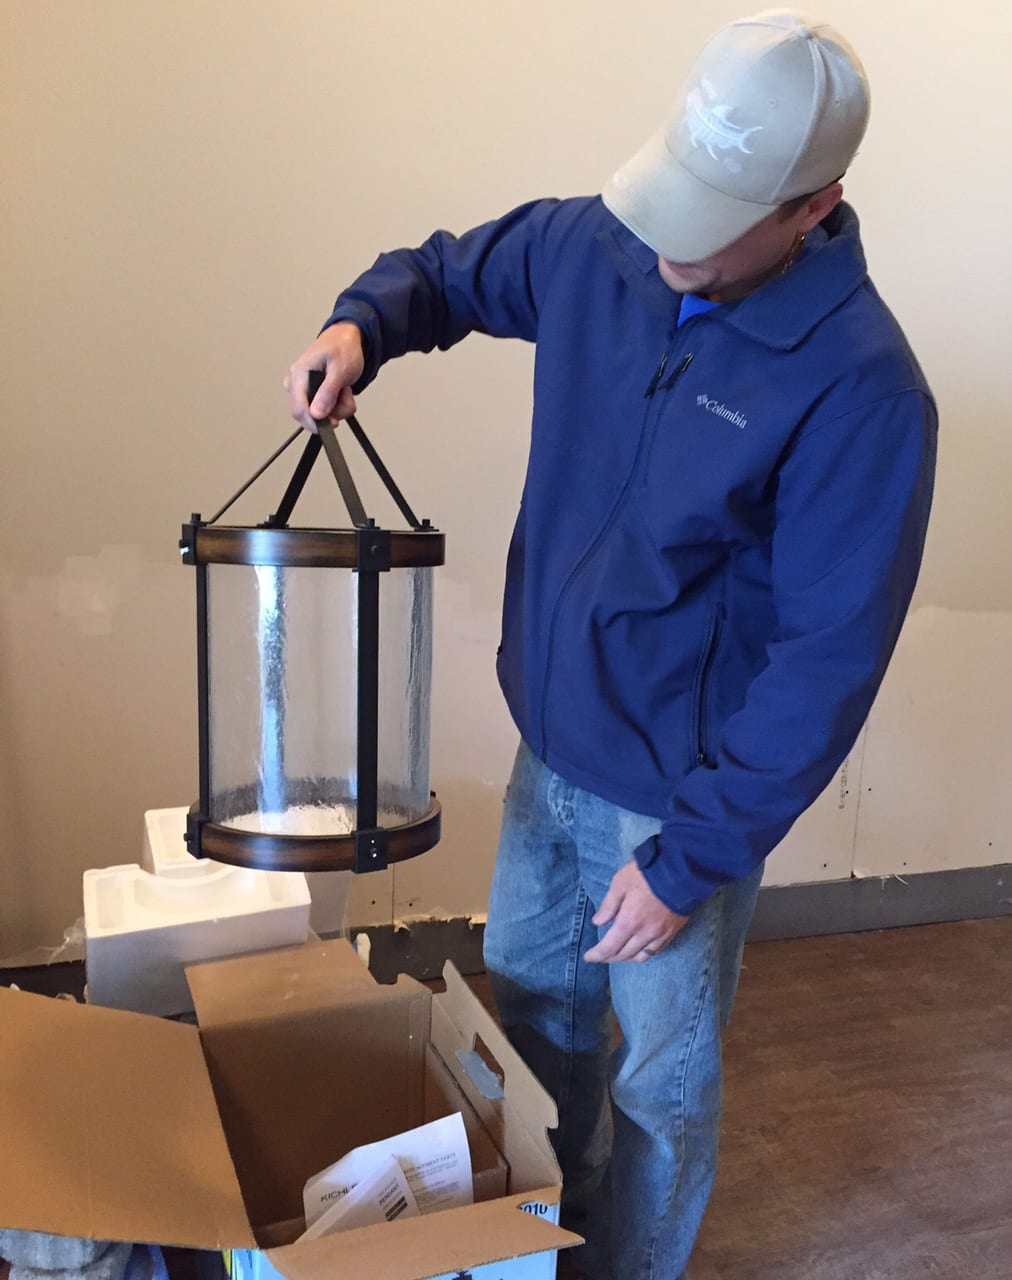 David Borselle holds up one of the new lights that is about to be installed at Park & Oak. Photo credit: Ronni Newton